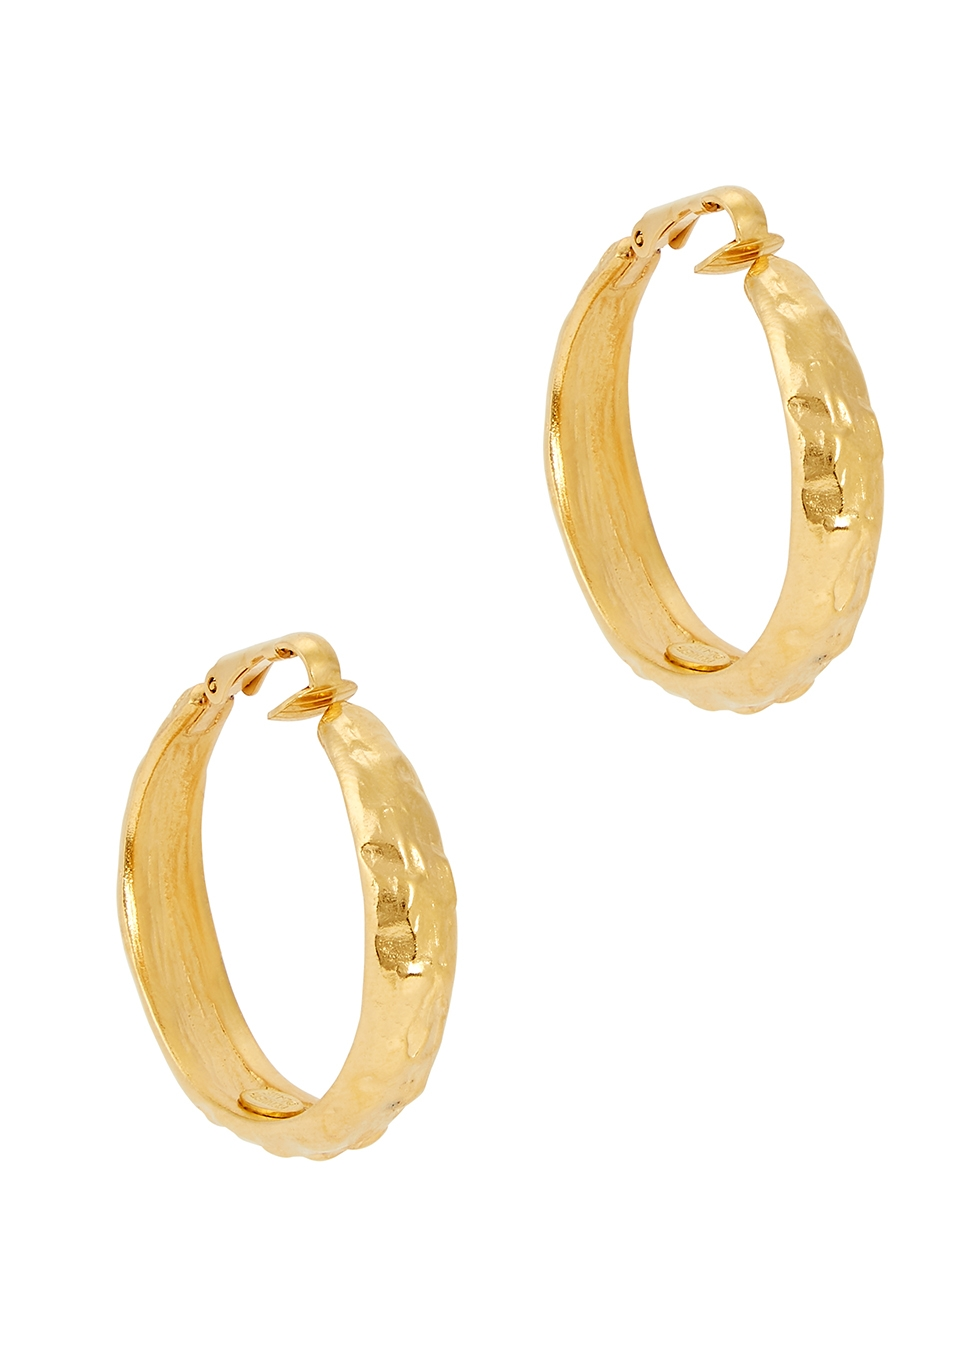 Hammered gold-tone clip-on hoop earrings